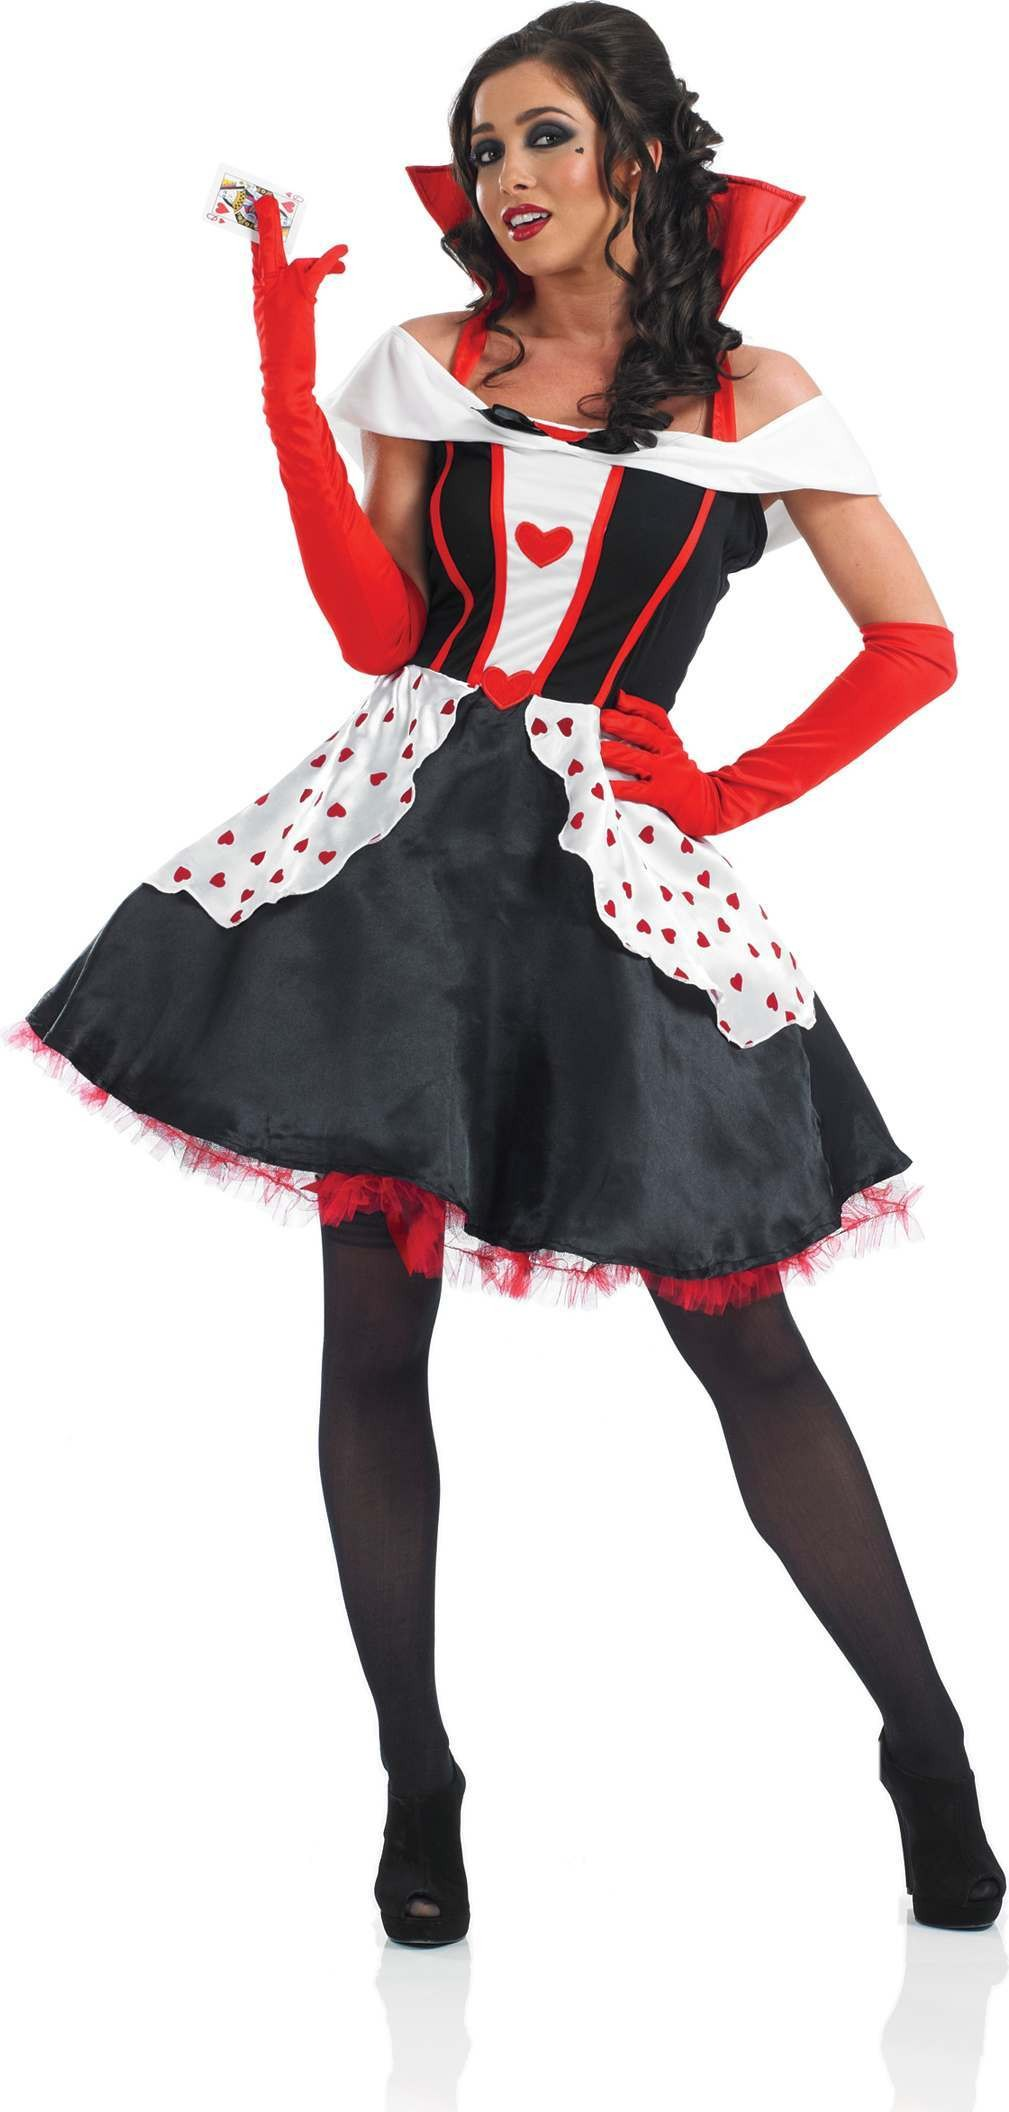 Longer Length Queen Of Hearts Fairy Tales Outfit - Size 28-30